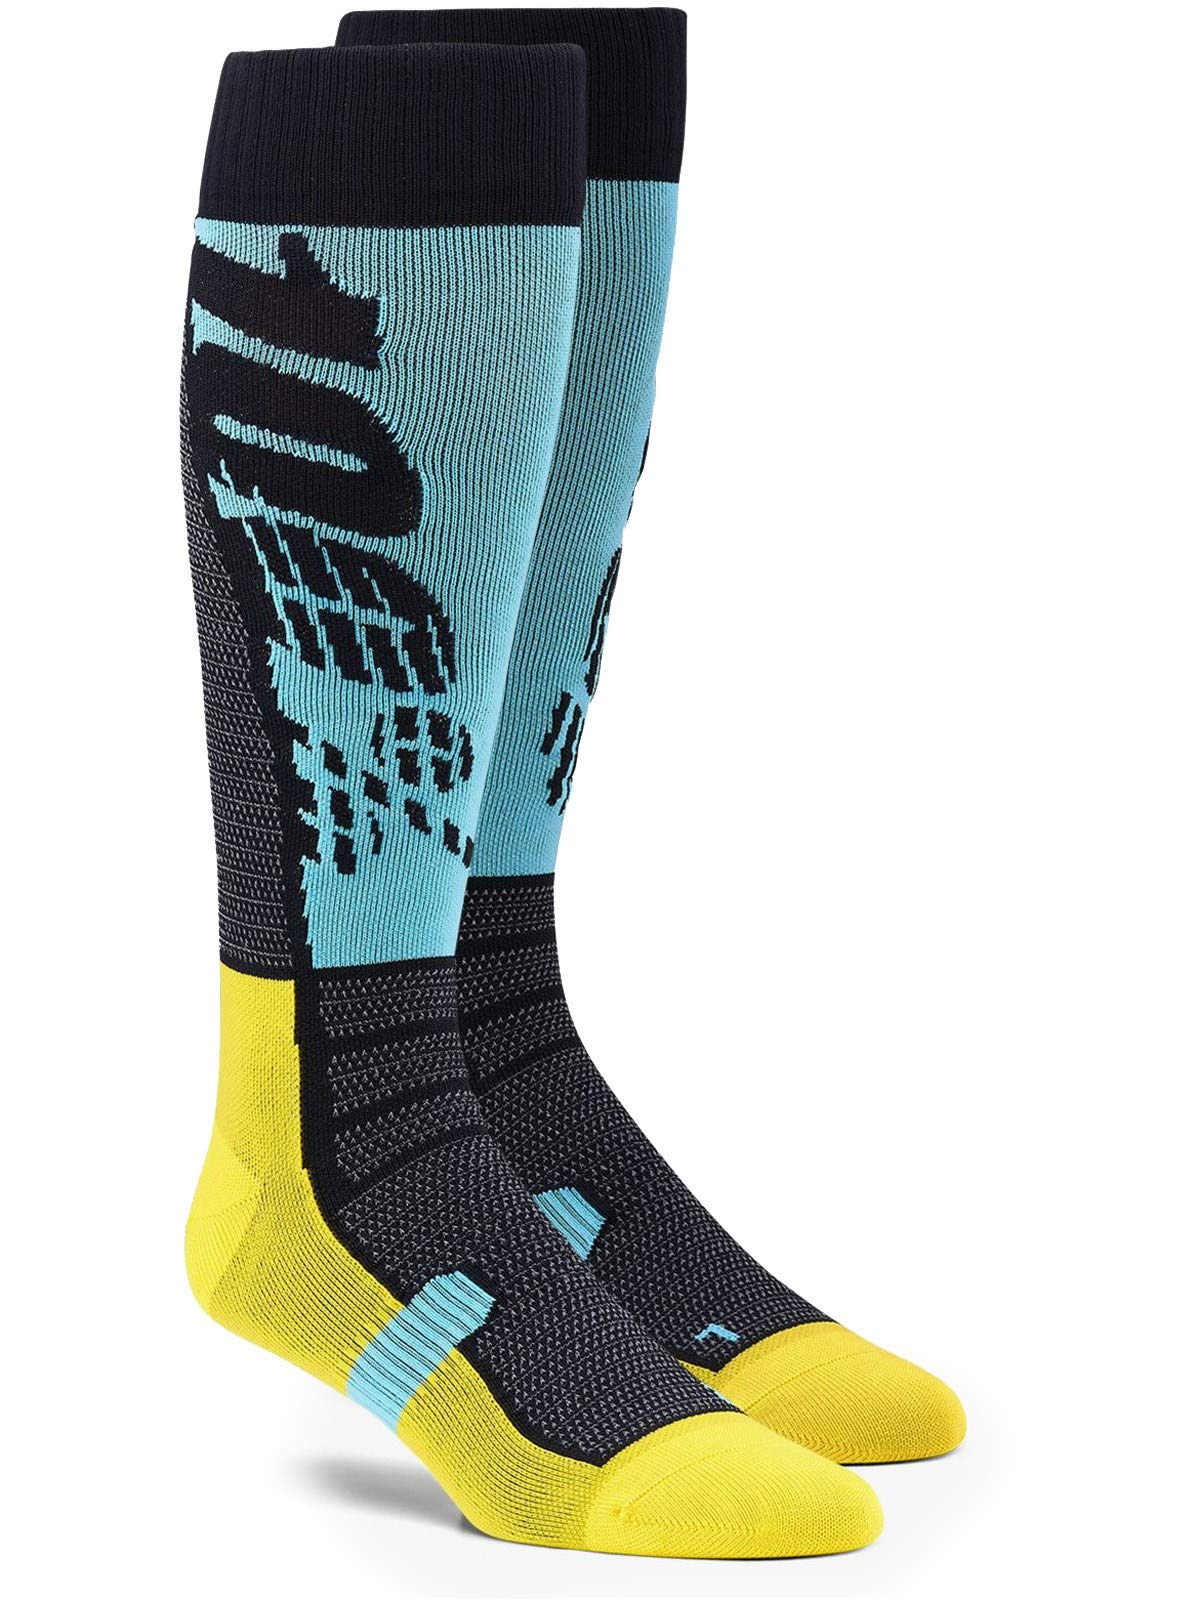 100% Adults Hi Side Performance Moto Socks (Cyan, L XL) by Unknown